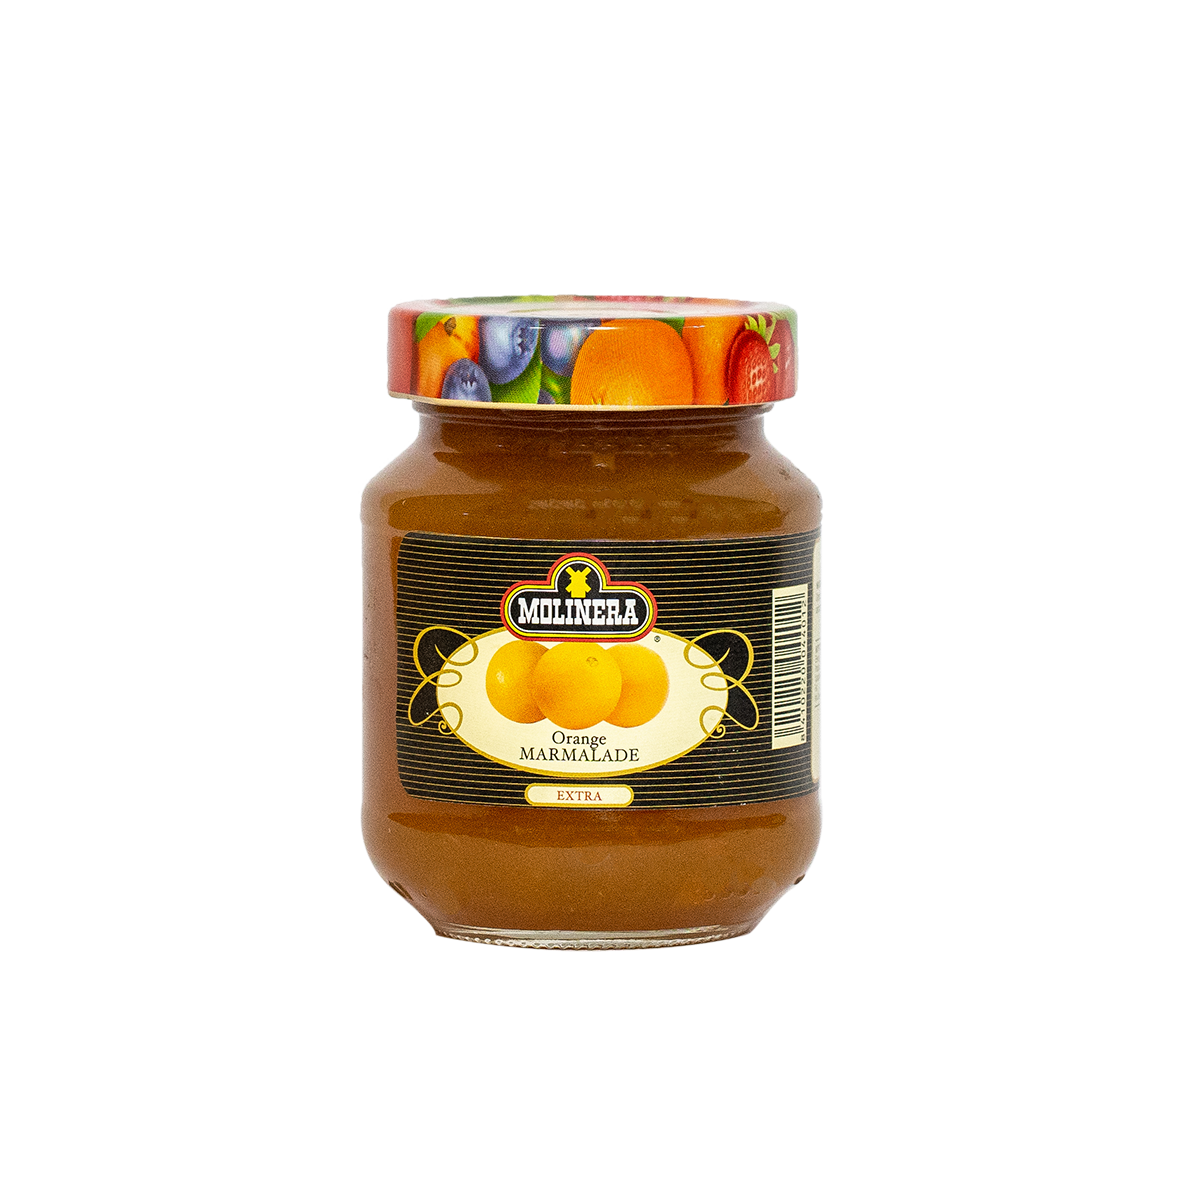 Molinera Orange Marmalade